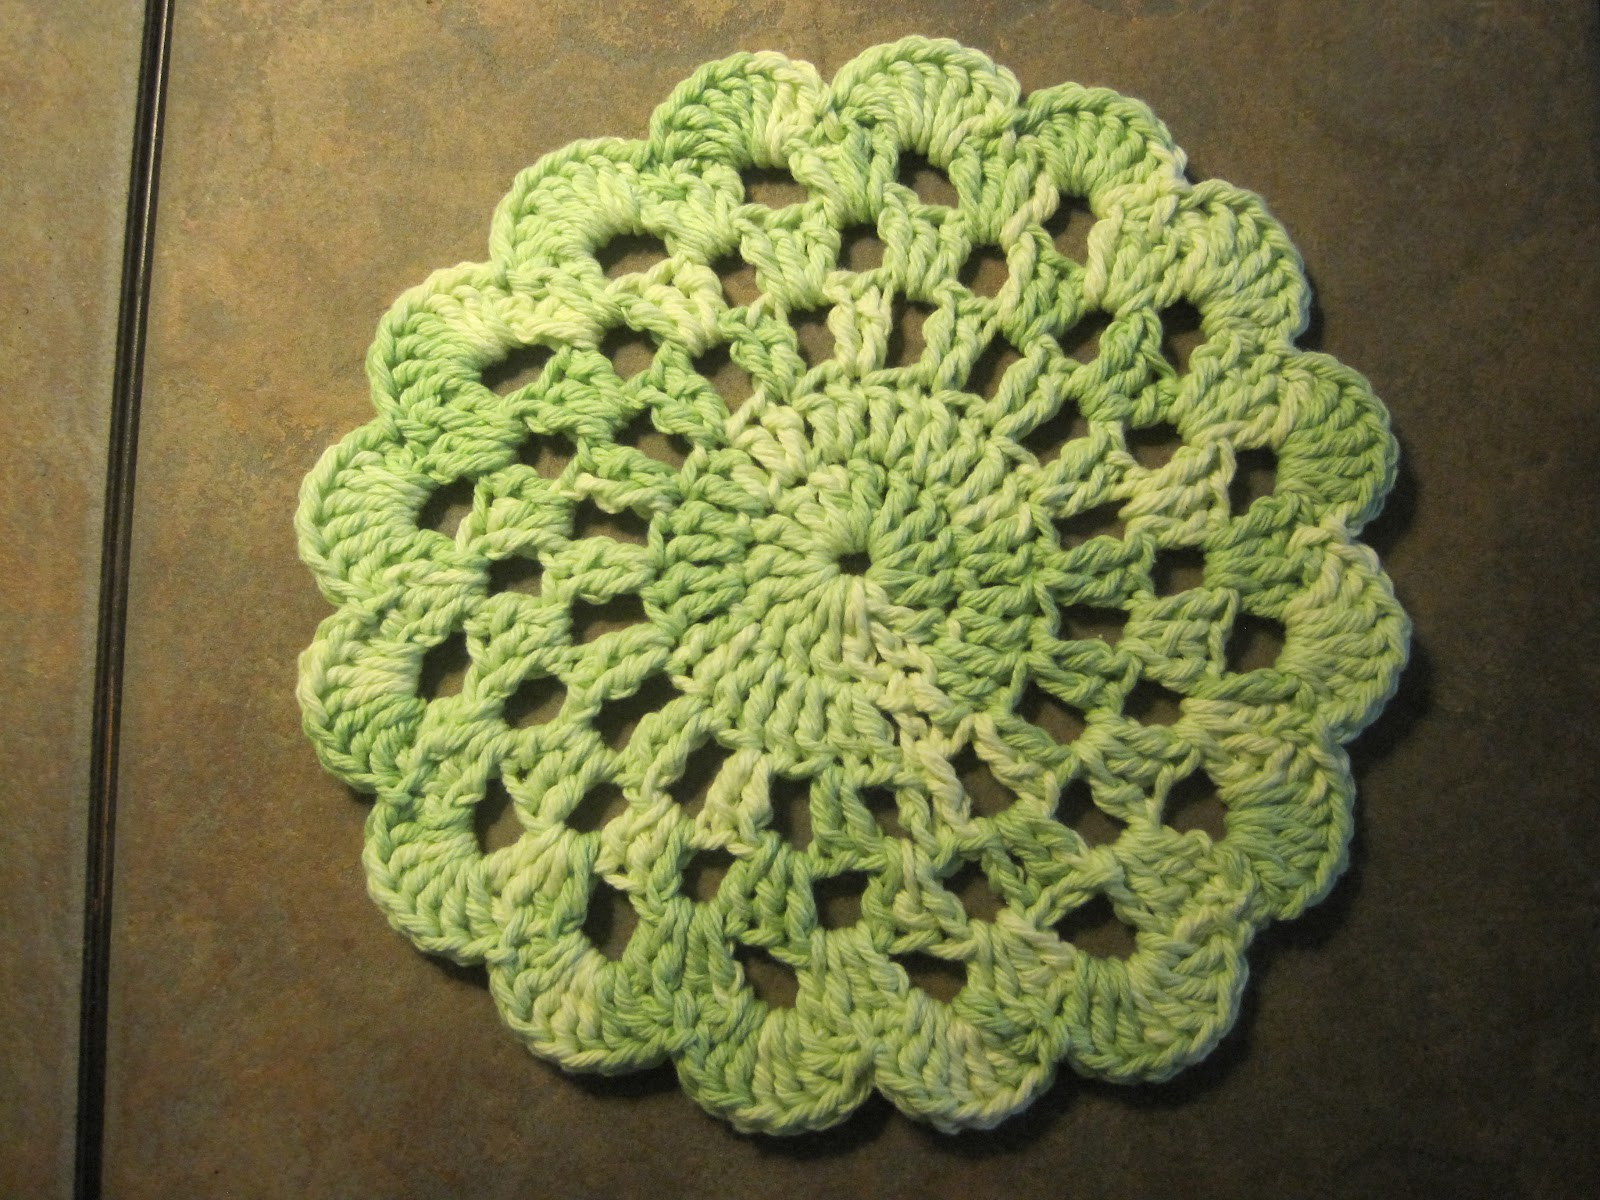 Stitches, Scraps and Sparkles in the Sun: Dishcloth, Yarn ...